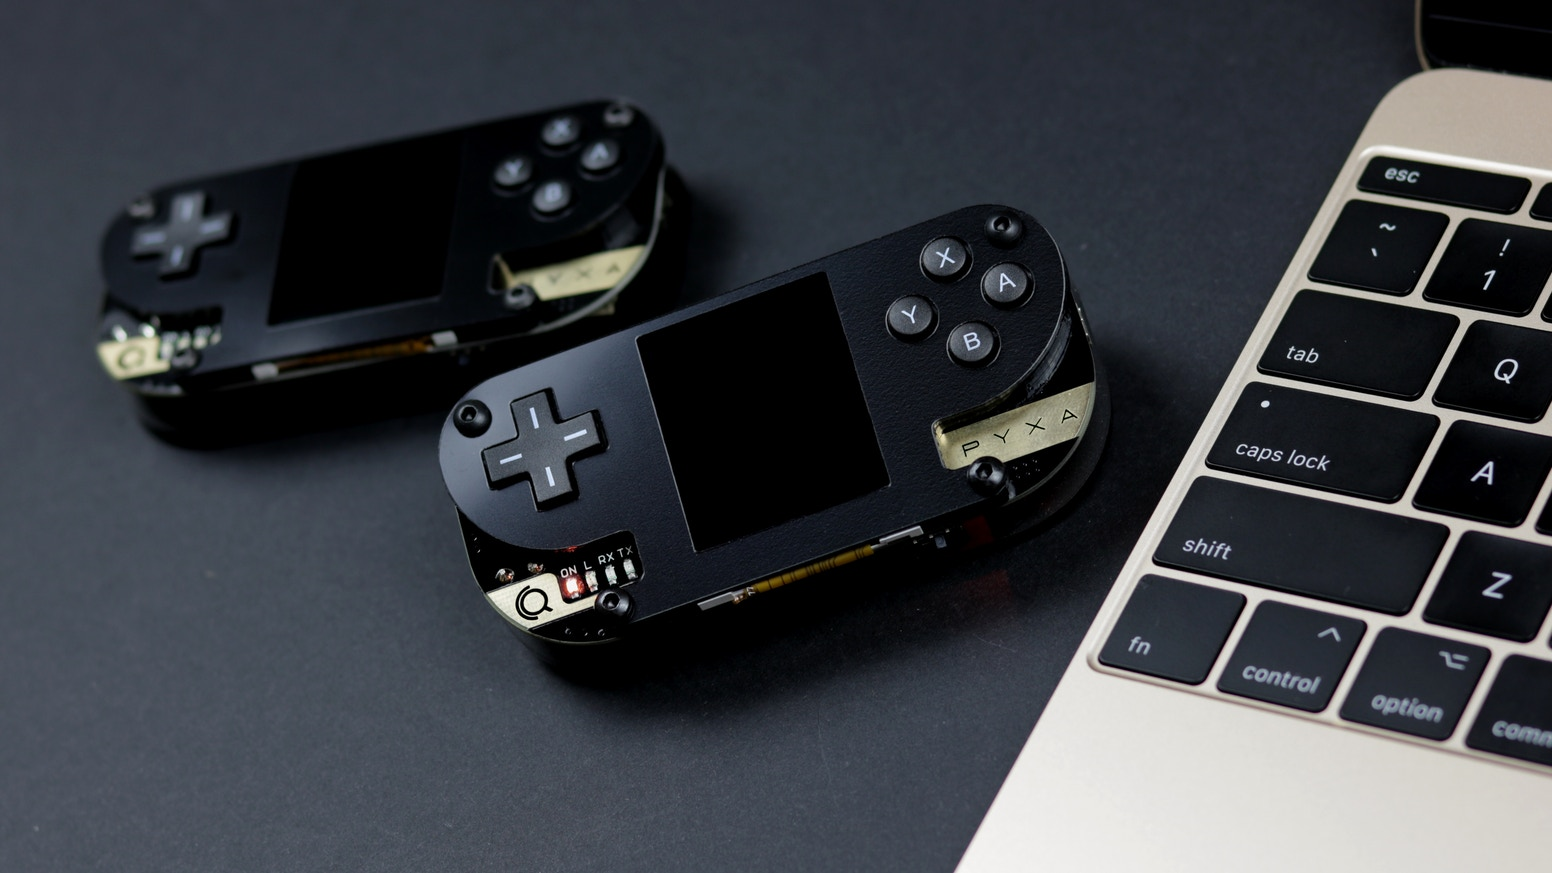 Build your game console and create your own video games whilst learning about coding.